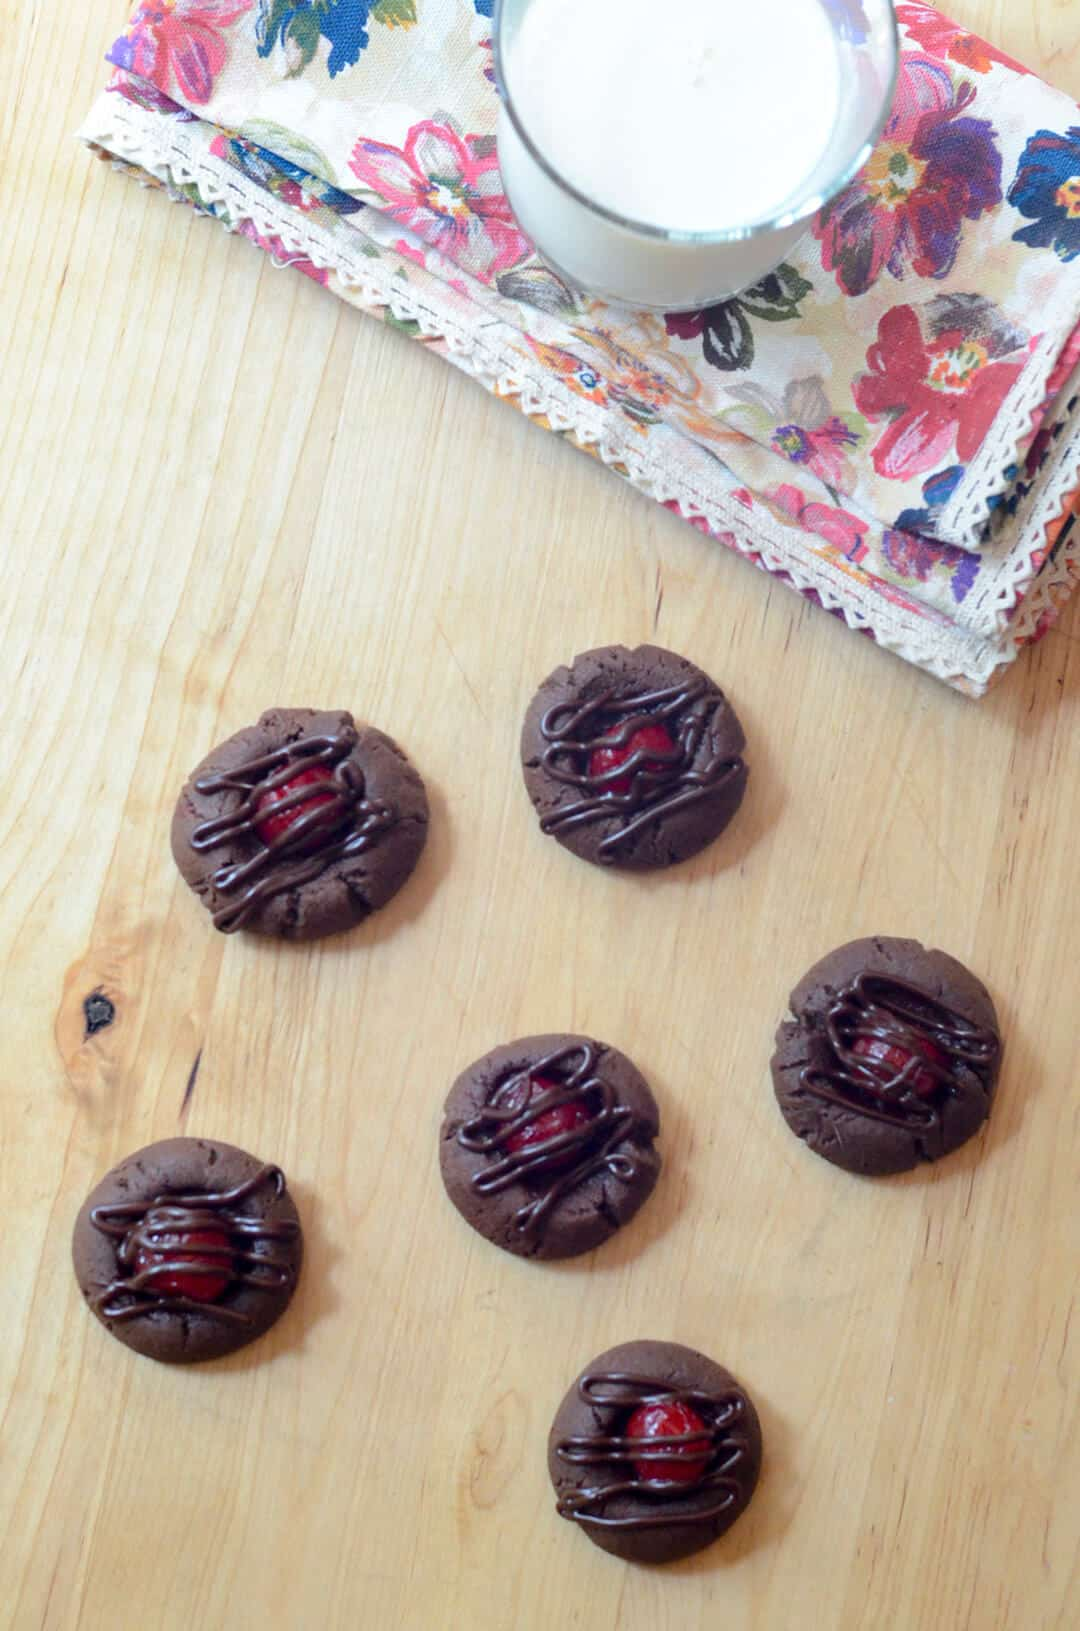 Chocolate cookies topped with cherries and melted chocolate on a wooden board.